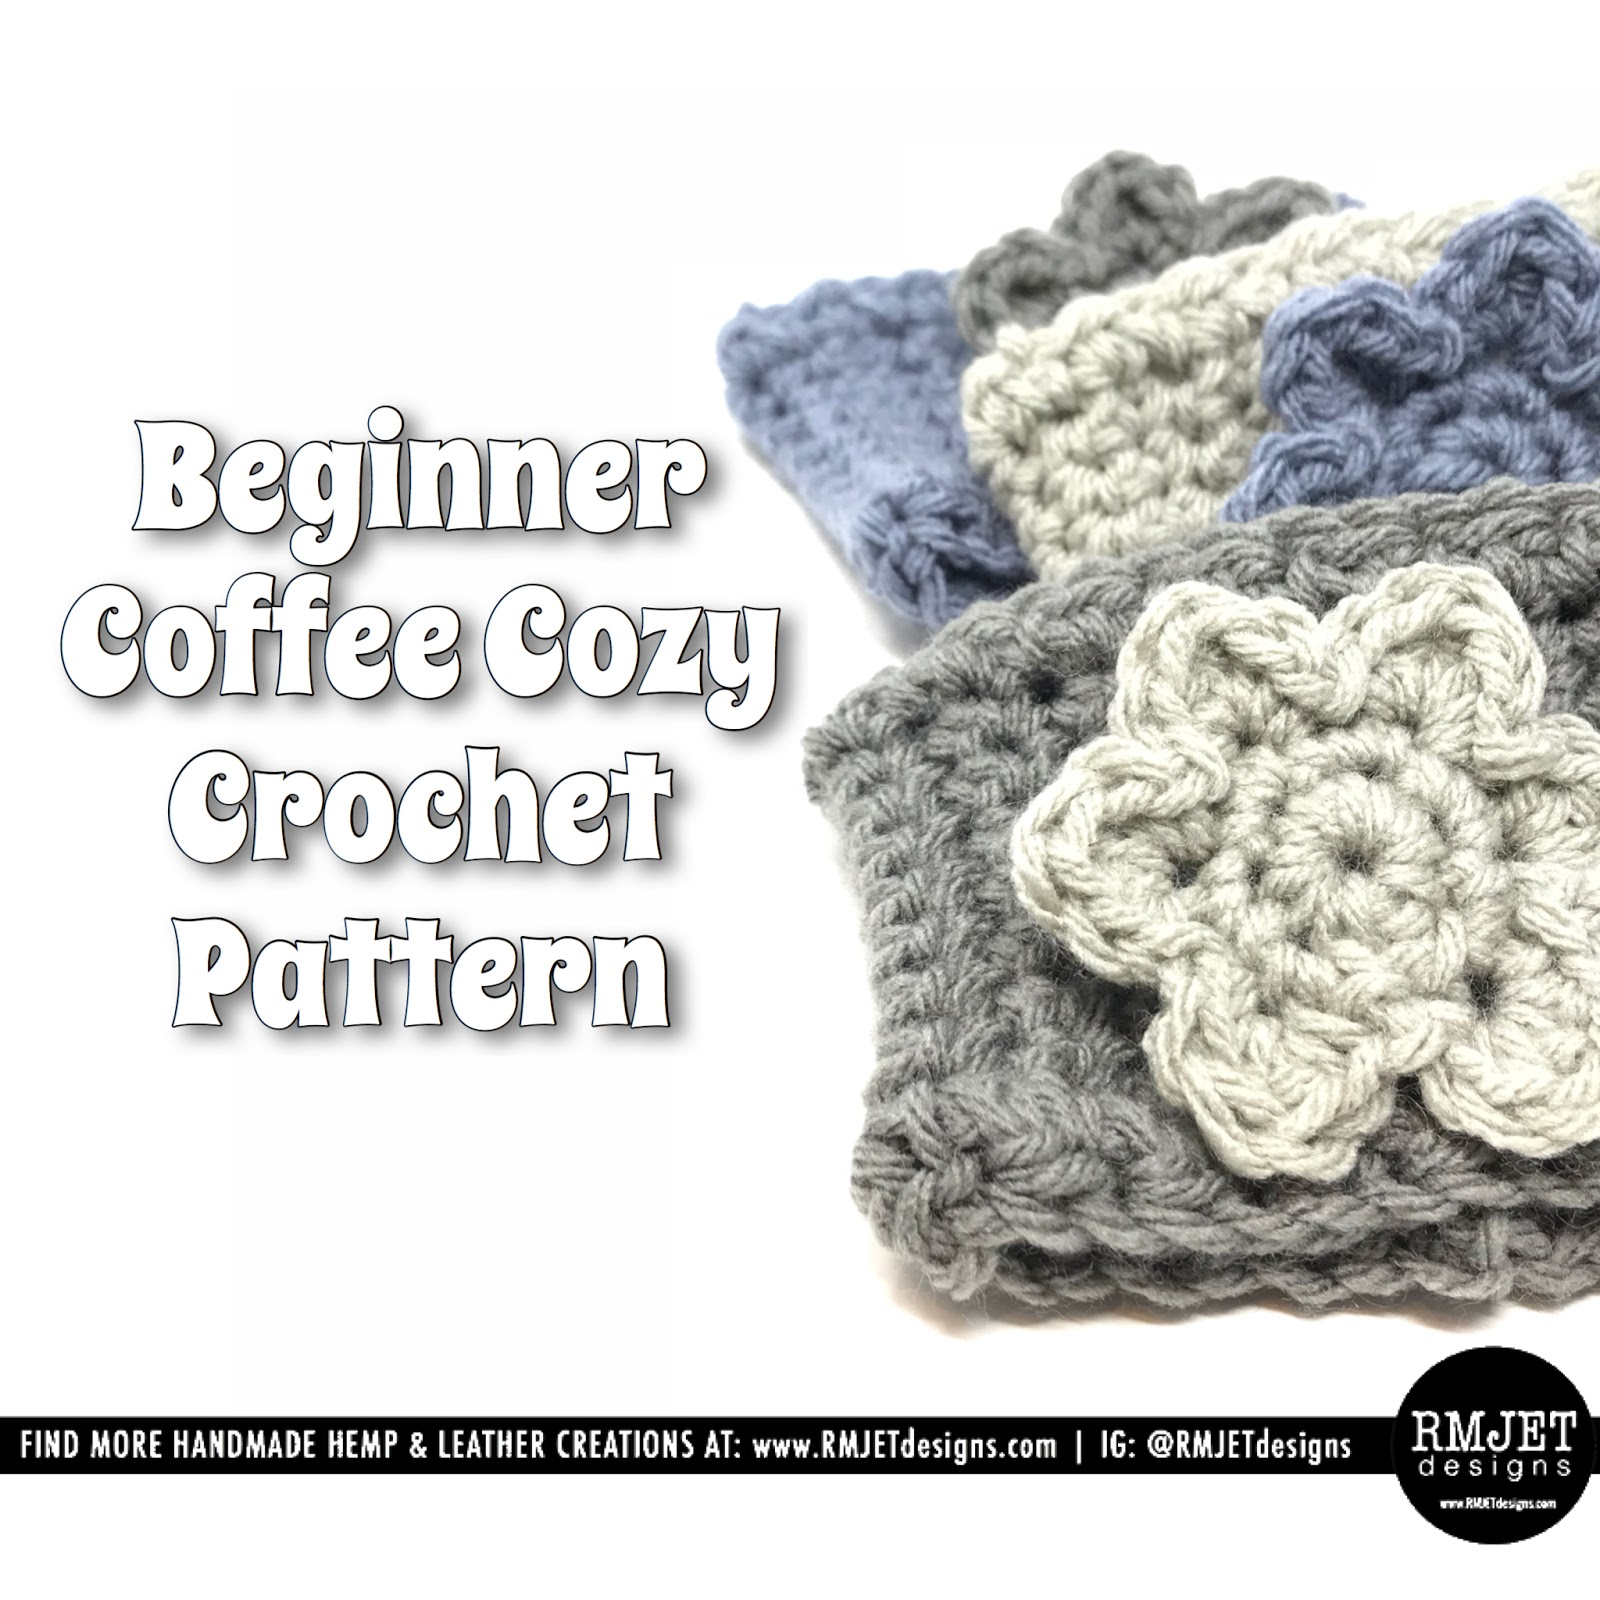 Flower Coffee Cozy FREE Crochet Pattern by RMJETdesigns